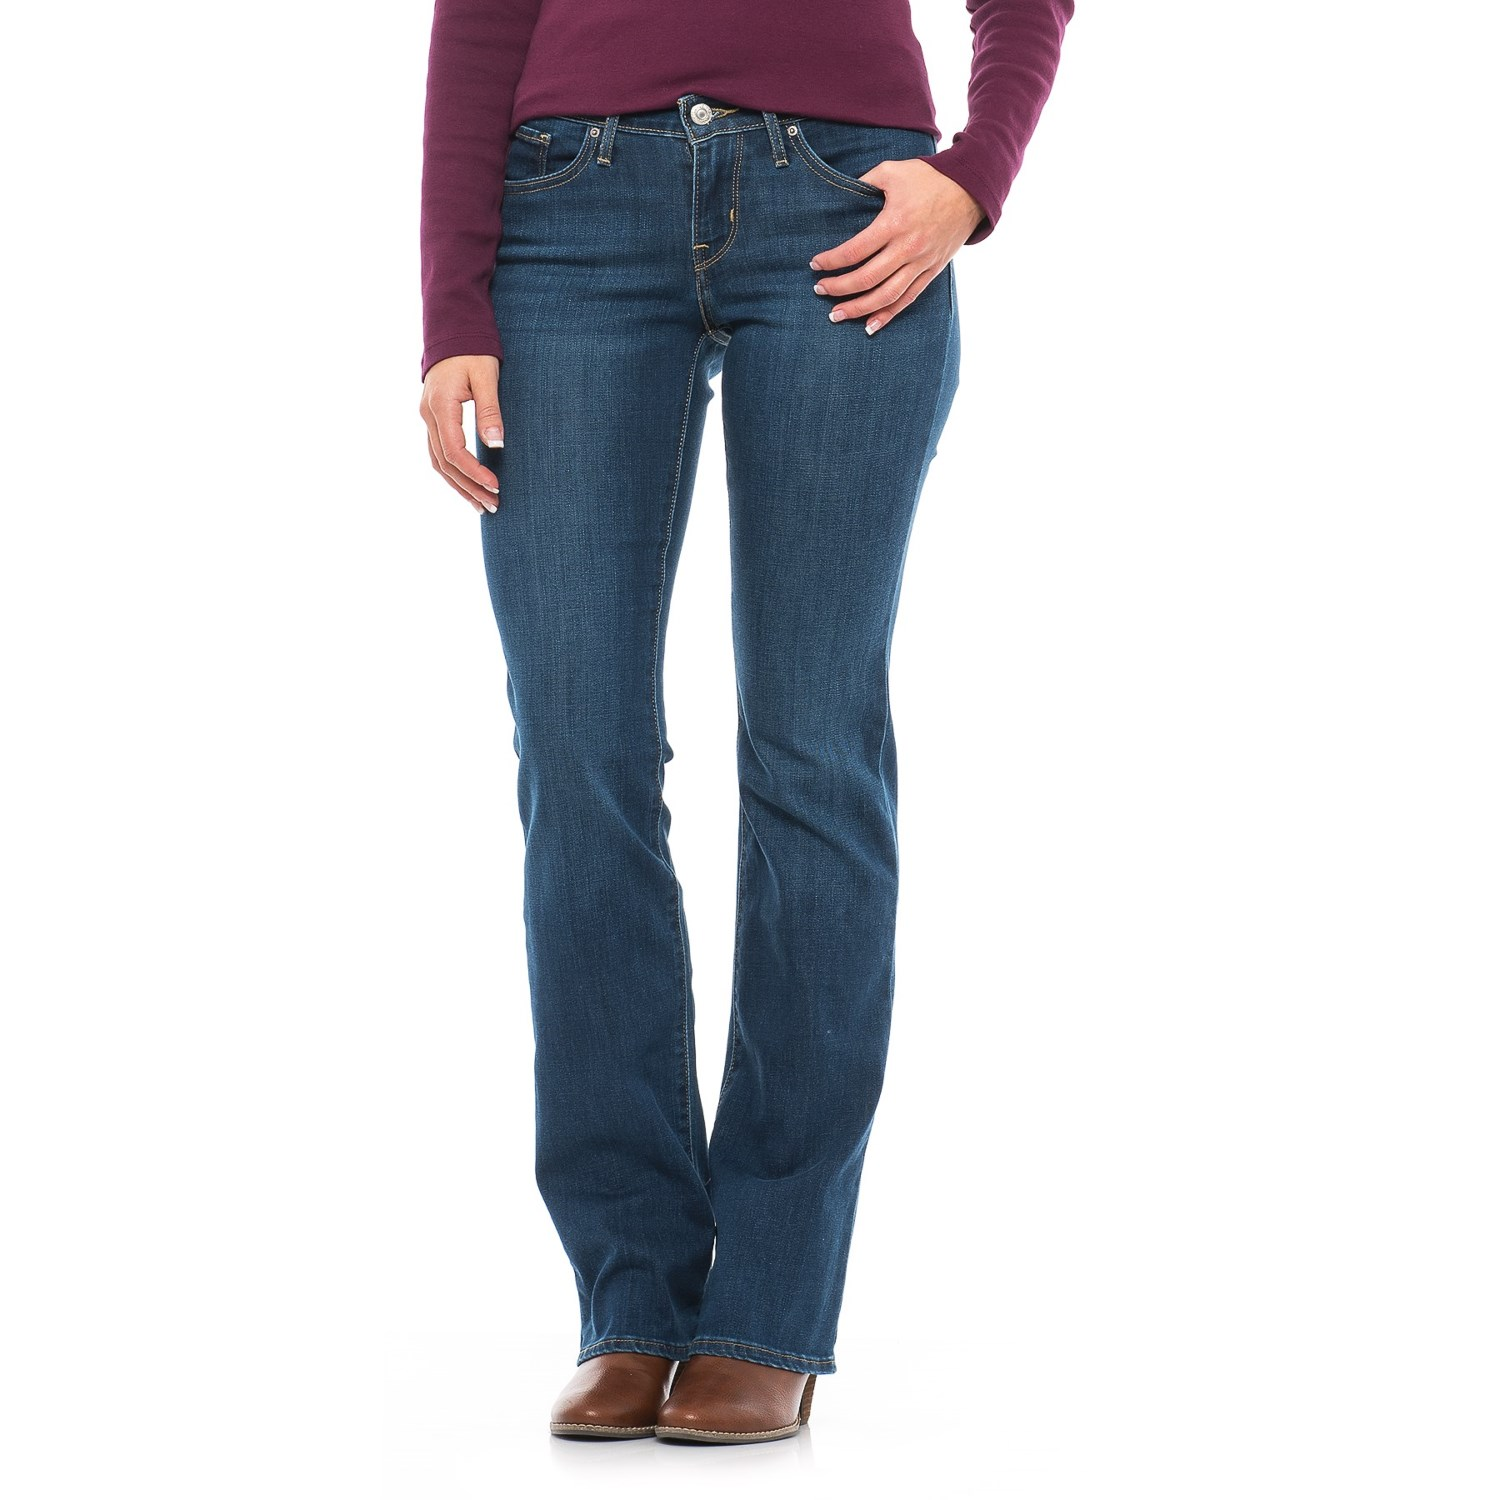 gravitybox.ga is a curvy girl hang out, all you need to know for your curvy body shape. Jeans, shorts, skirts, jackets I tried womens jeans for curvy fit and mid rise relaxed boot with 1% or 2% spandex/lycra both I have thigh issues with. Levis is a good curvy Boot Cut but not available direct from Levis.